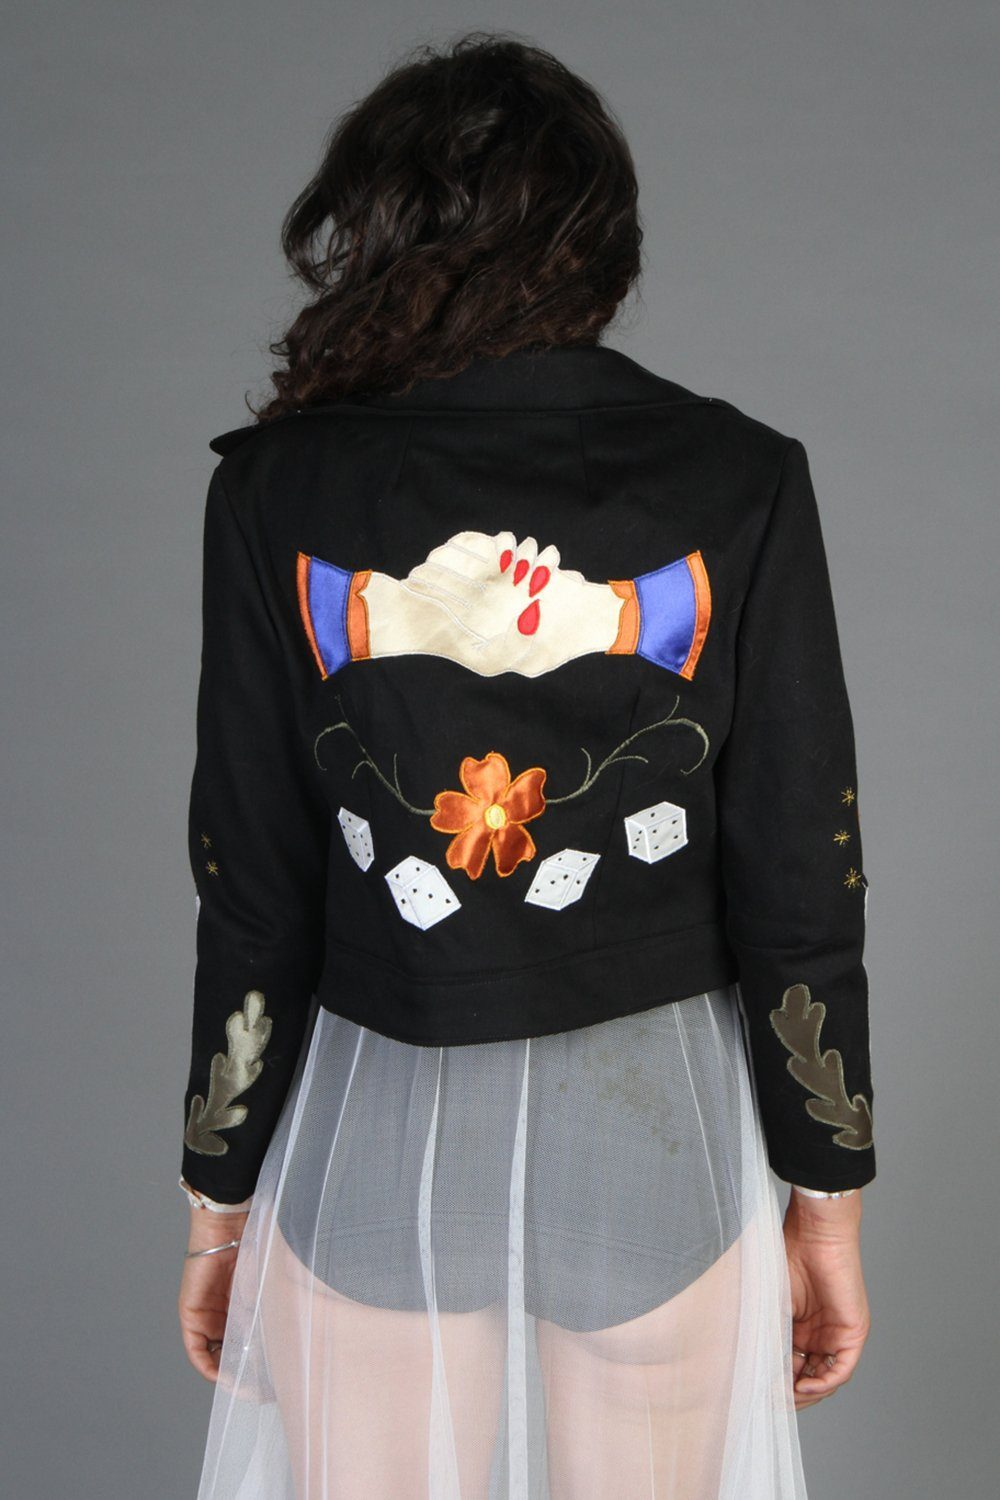 The Spider Black Denim Jacket Handcrafted by Rusty Cuts